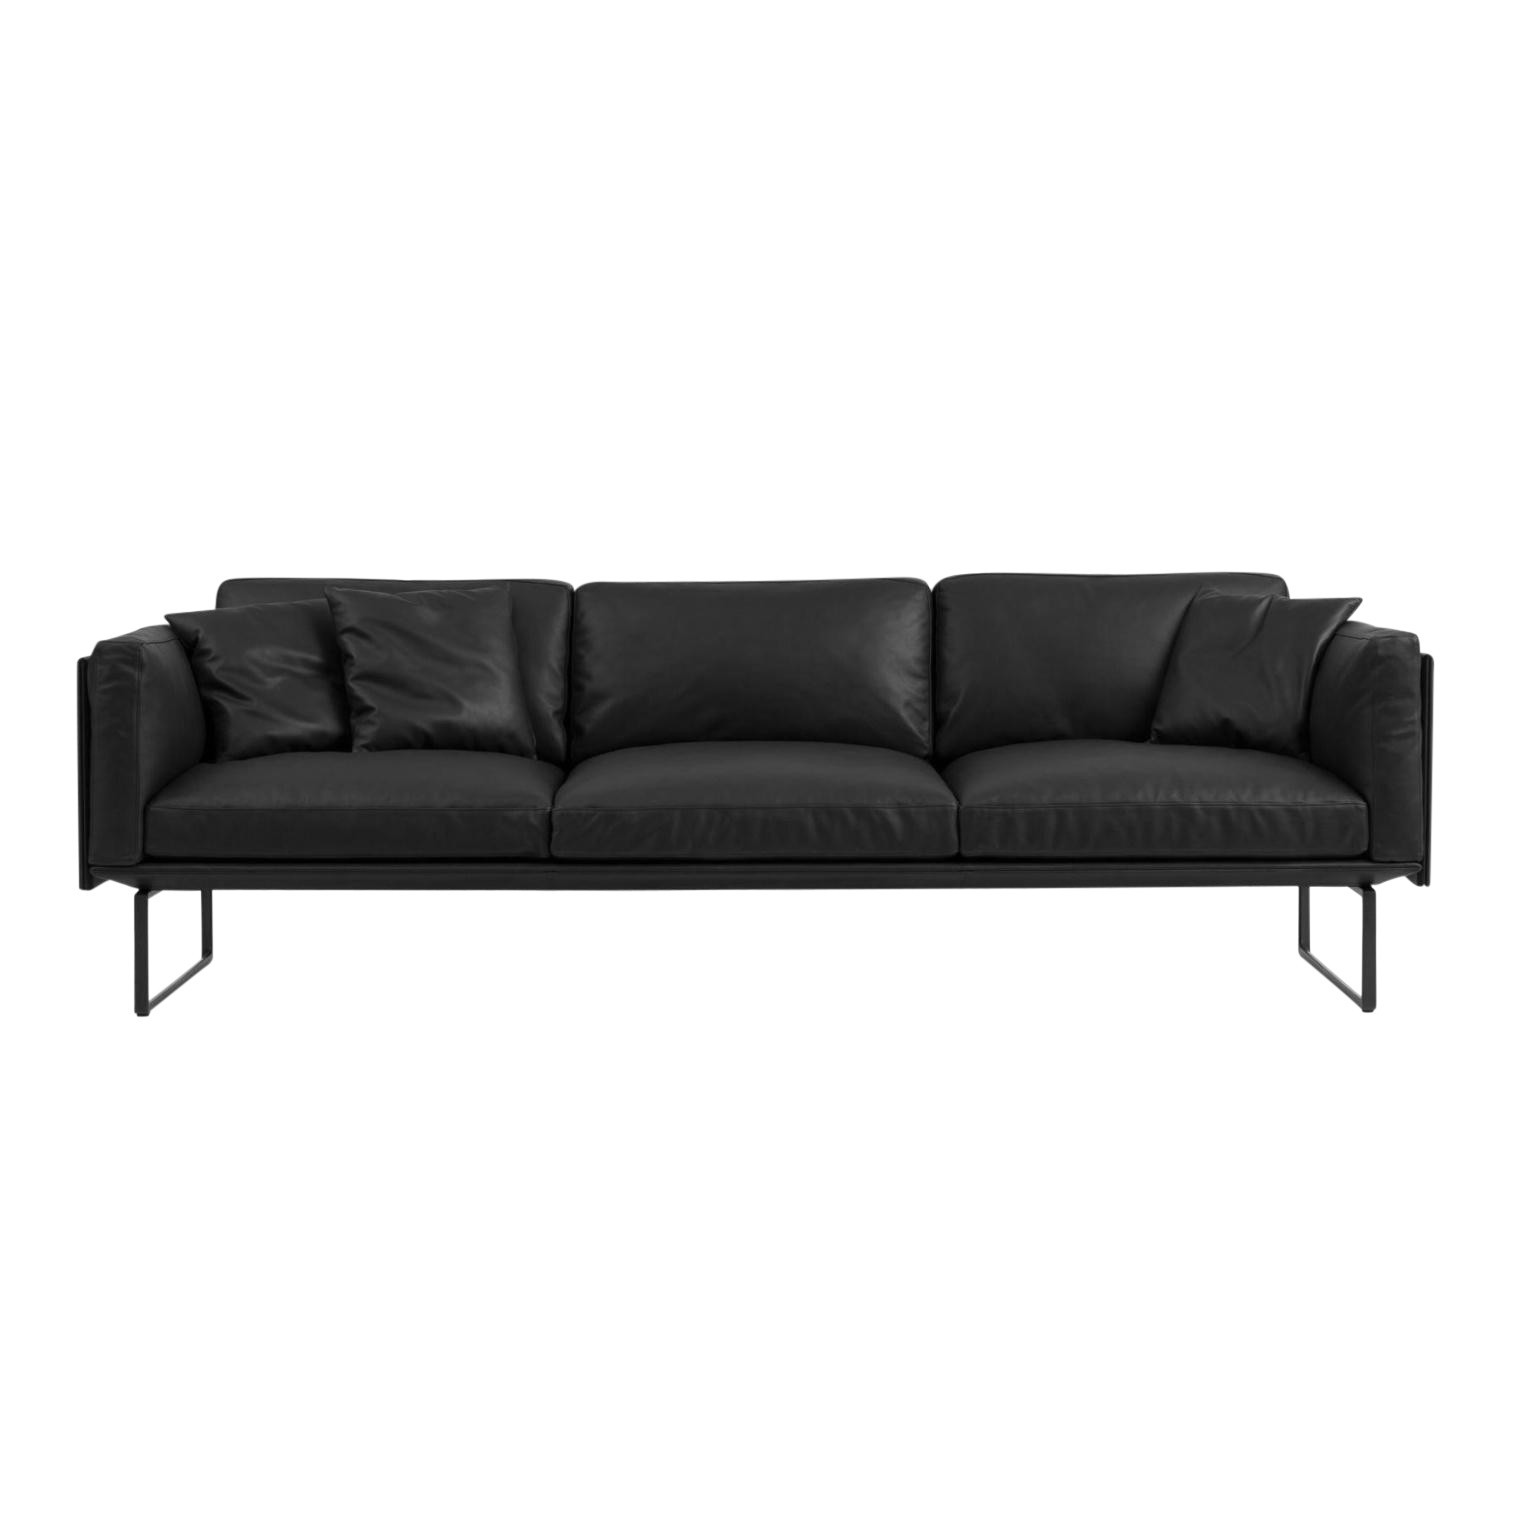 8 Piero Lissoni 3 Seater Leather Sofa